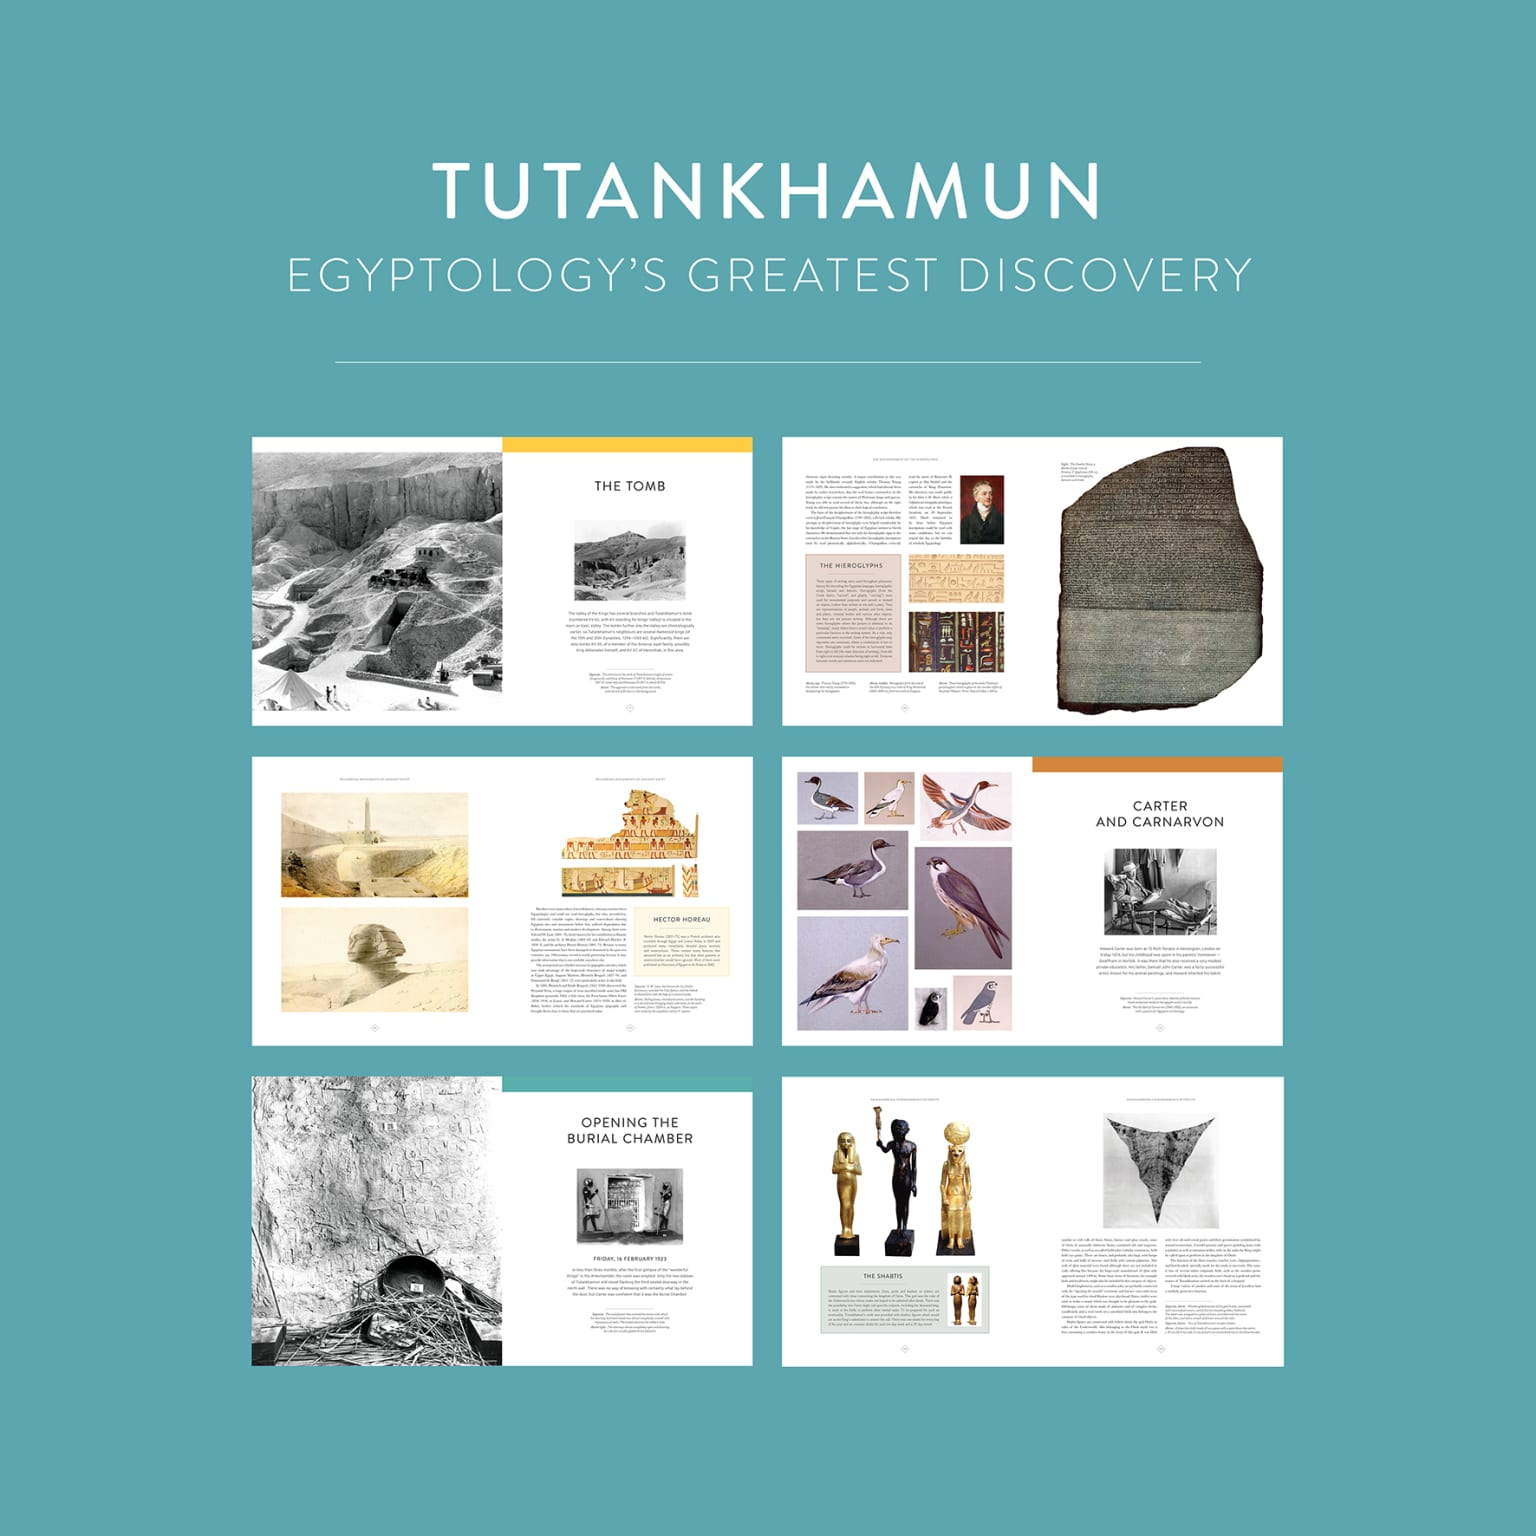 Tutankhamun: Egyptology's Greatest Discovery